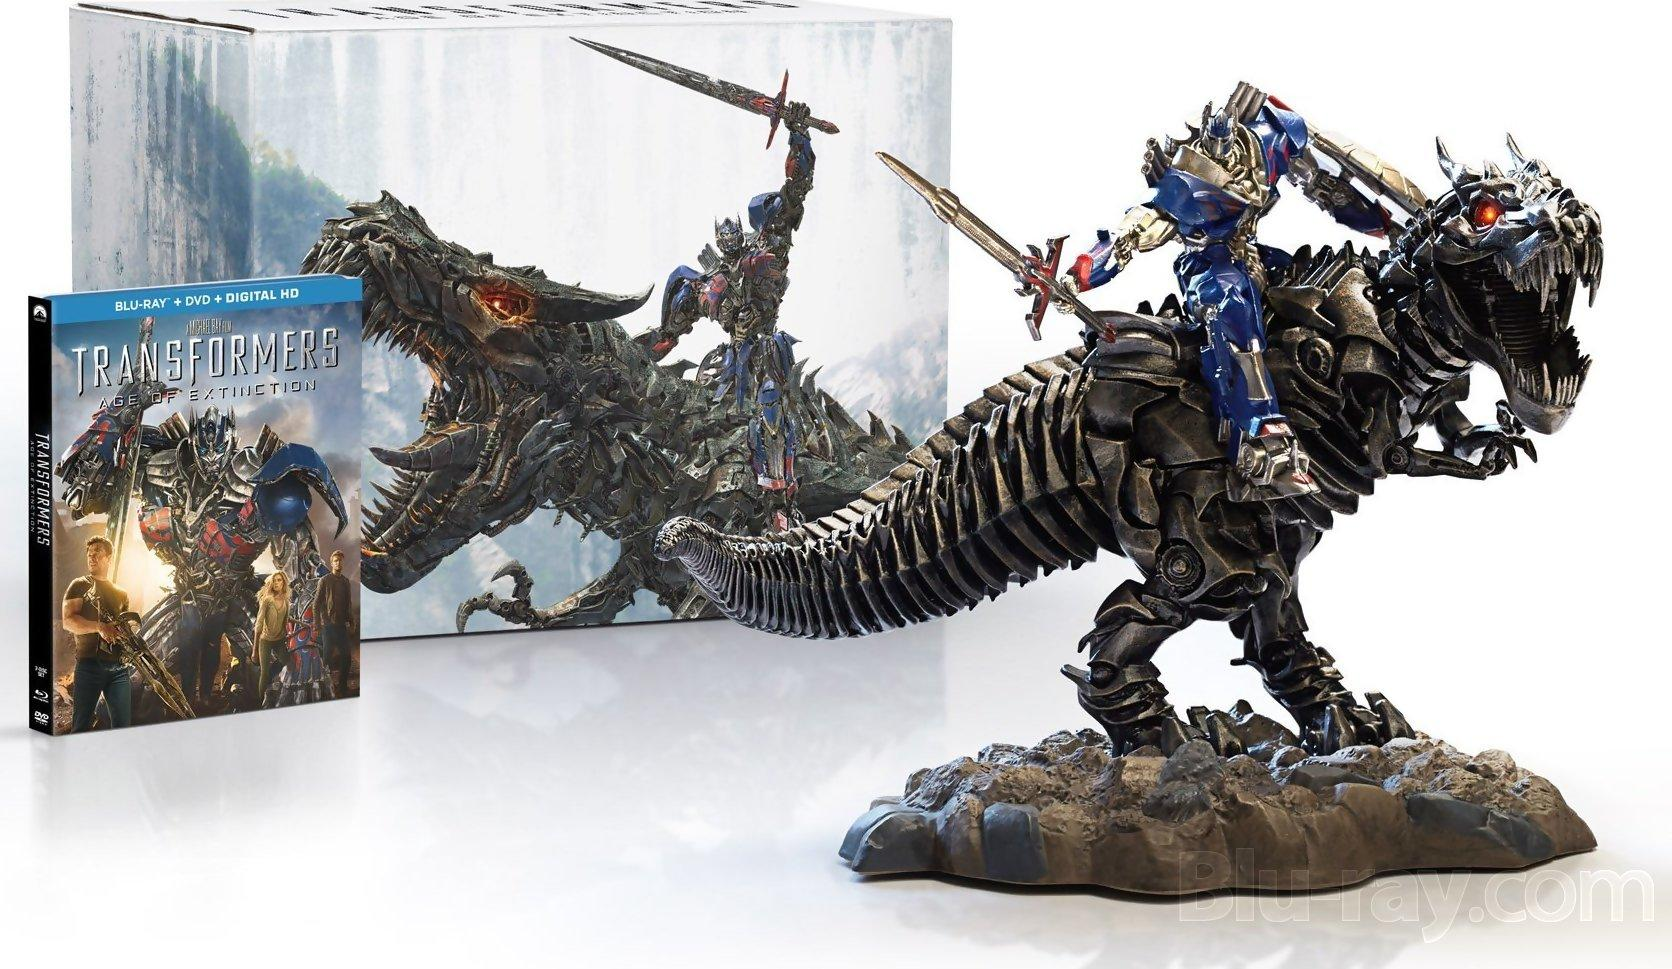 $29.99 Transformers: Age of Extinction Limited Edition Gift Set with Grimlock and Optimus Collectible Statue [Blu-ray]